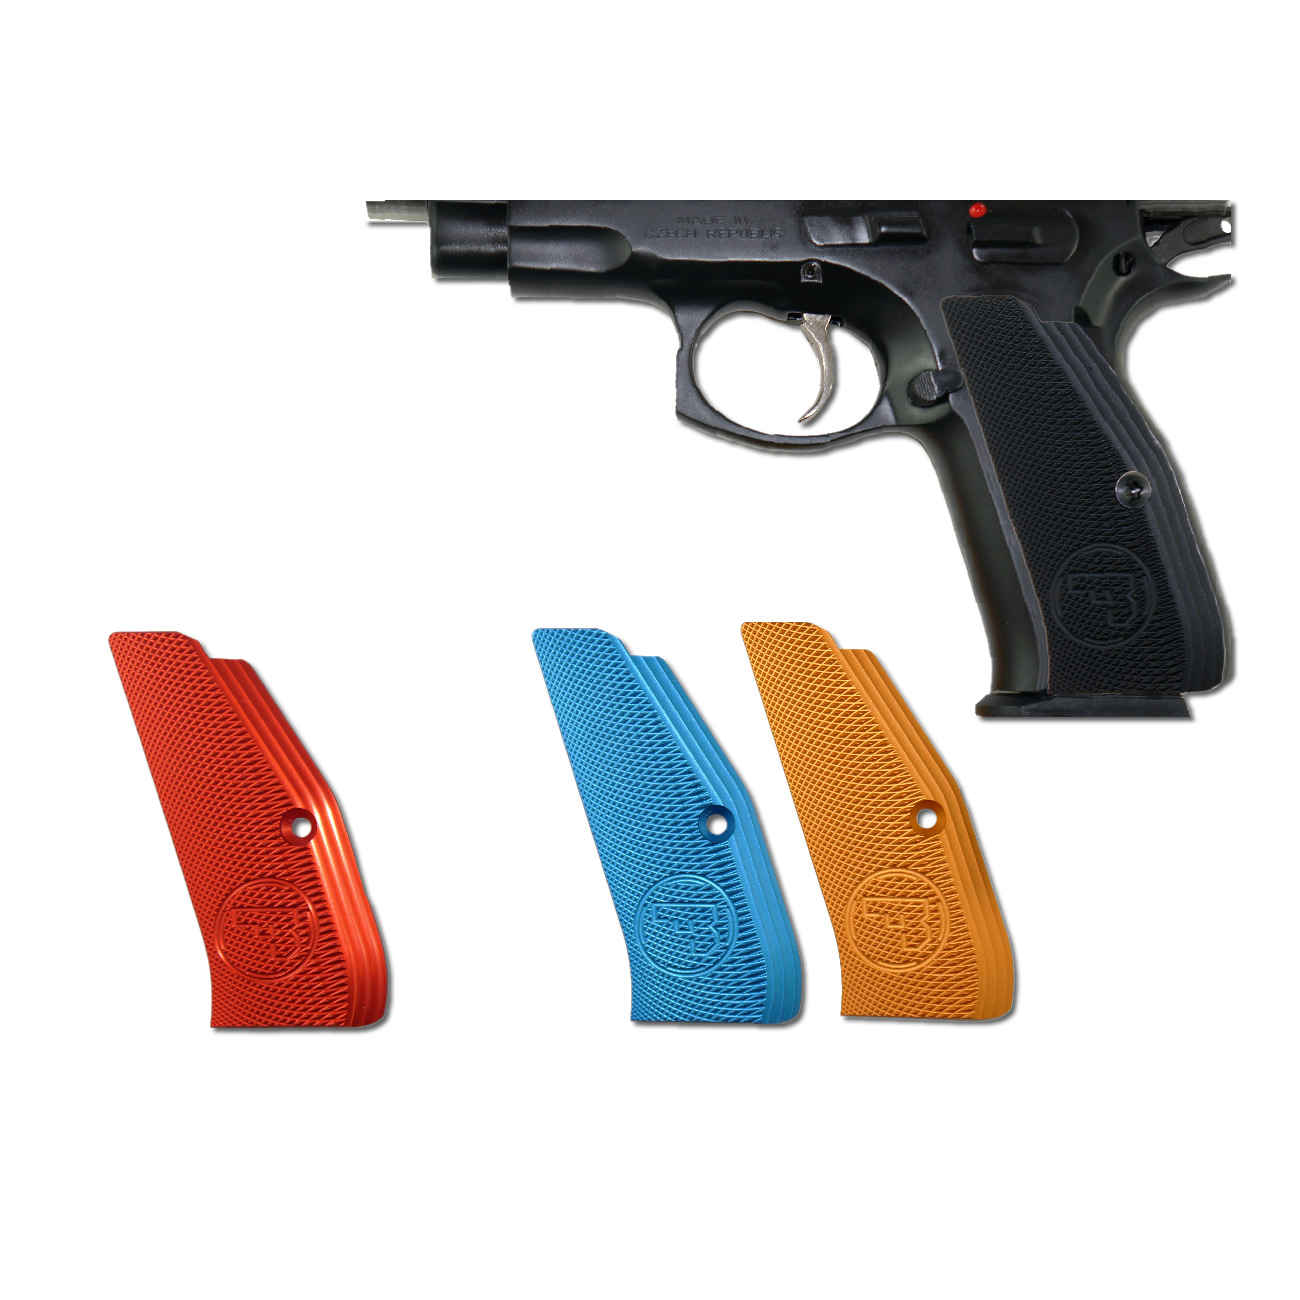 CZ Low Profile Grips, Black anodized Aluminum